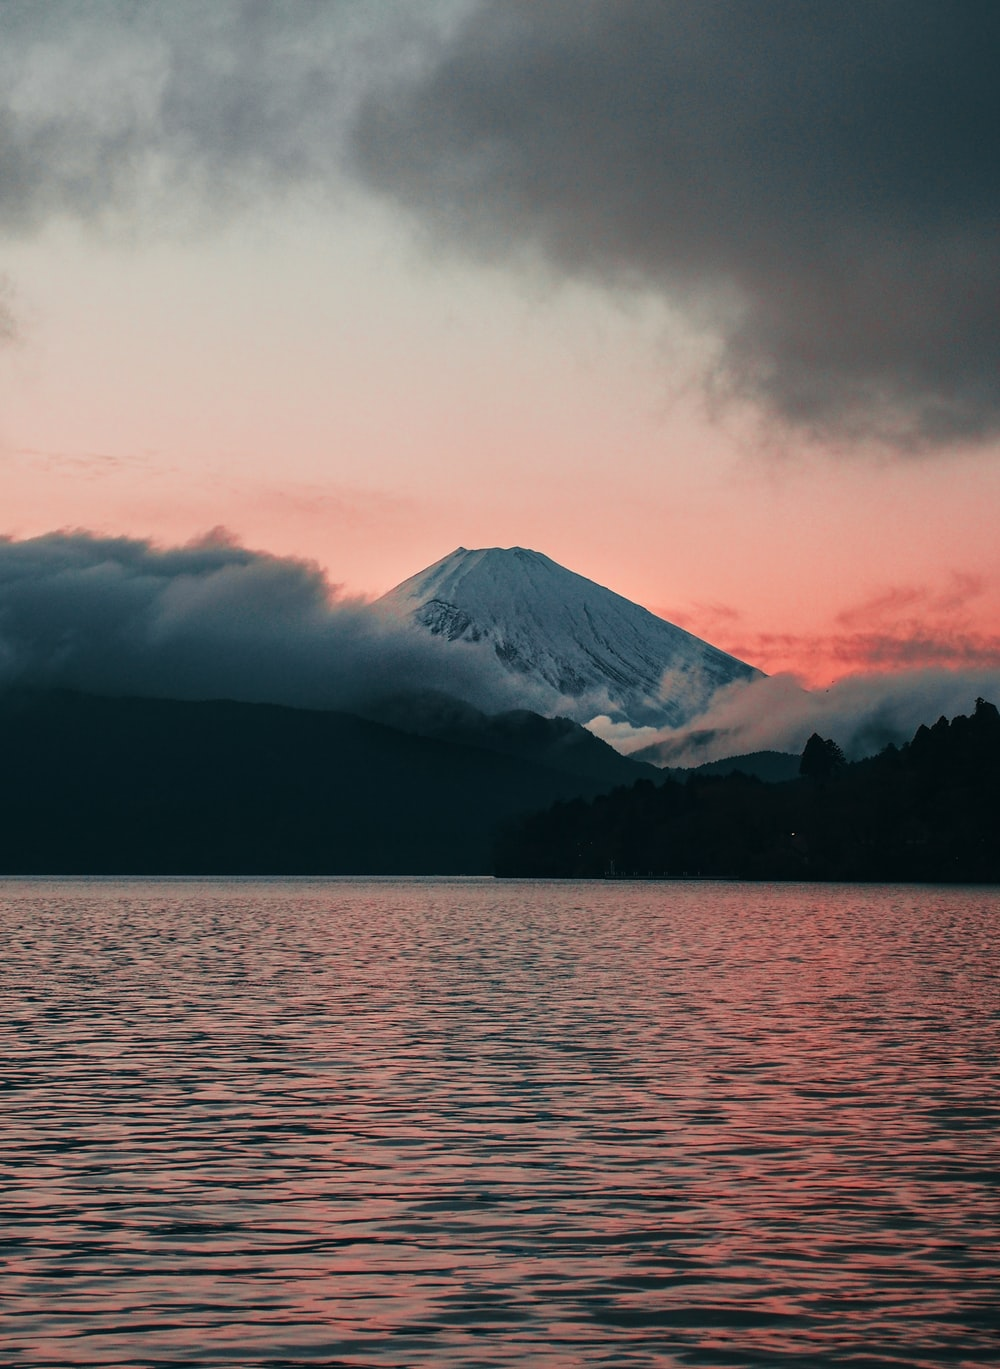 body of water near mountain under cloudy sky during daytime